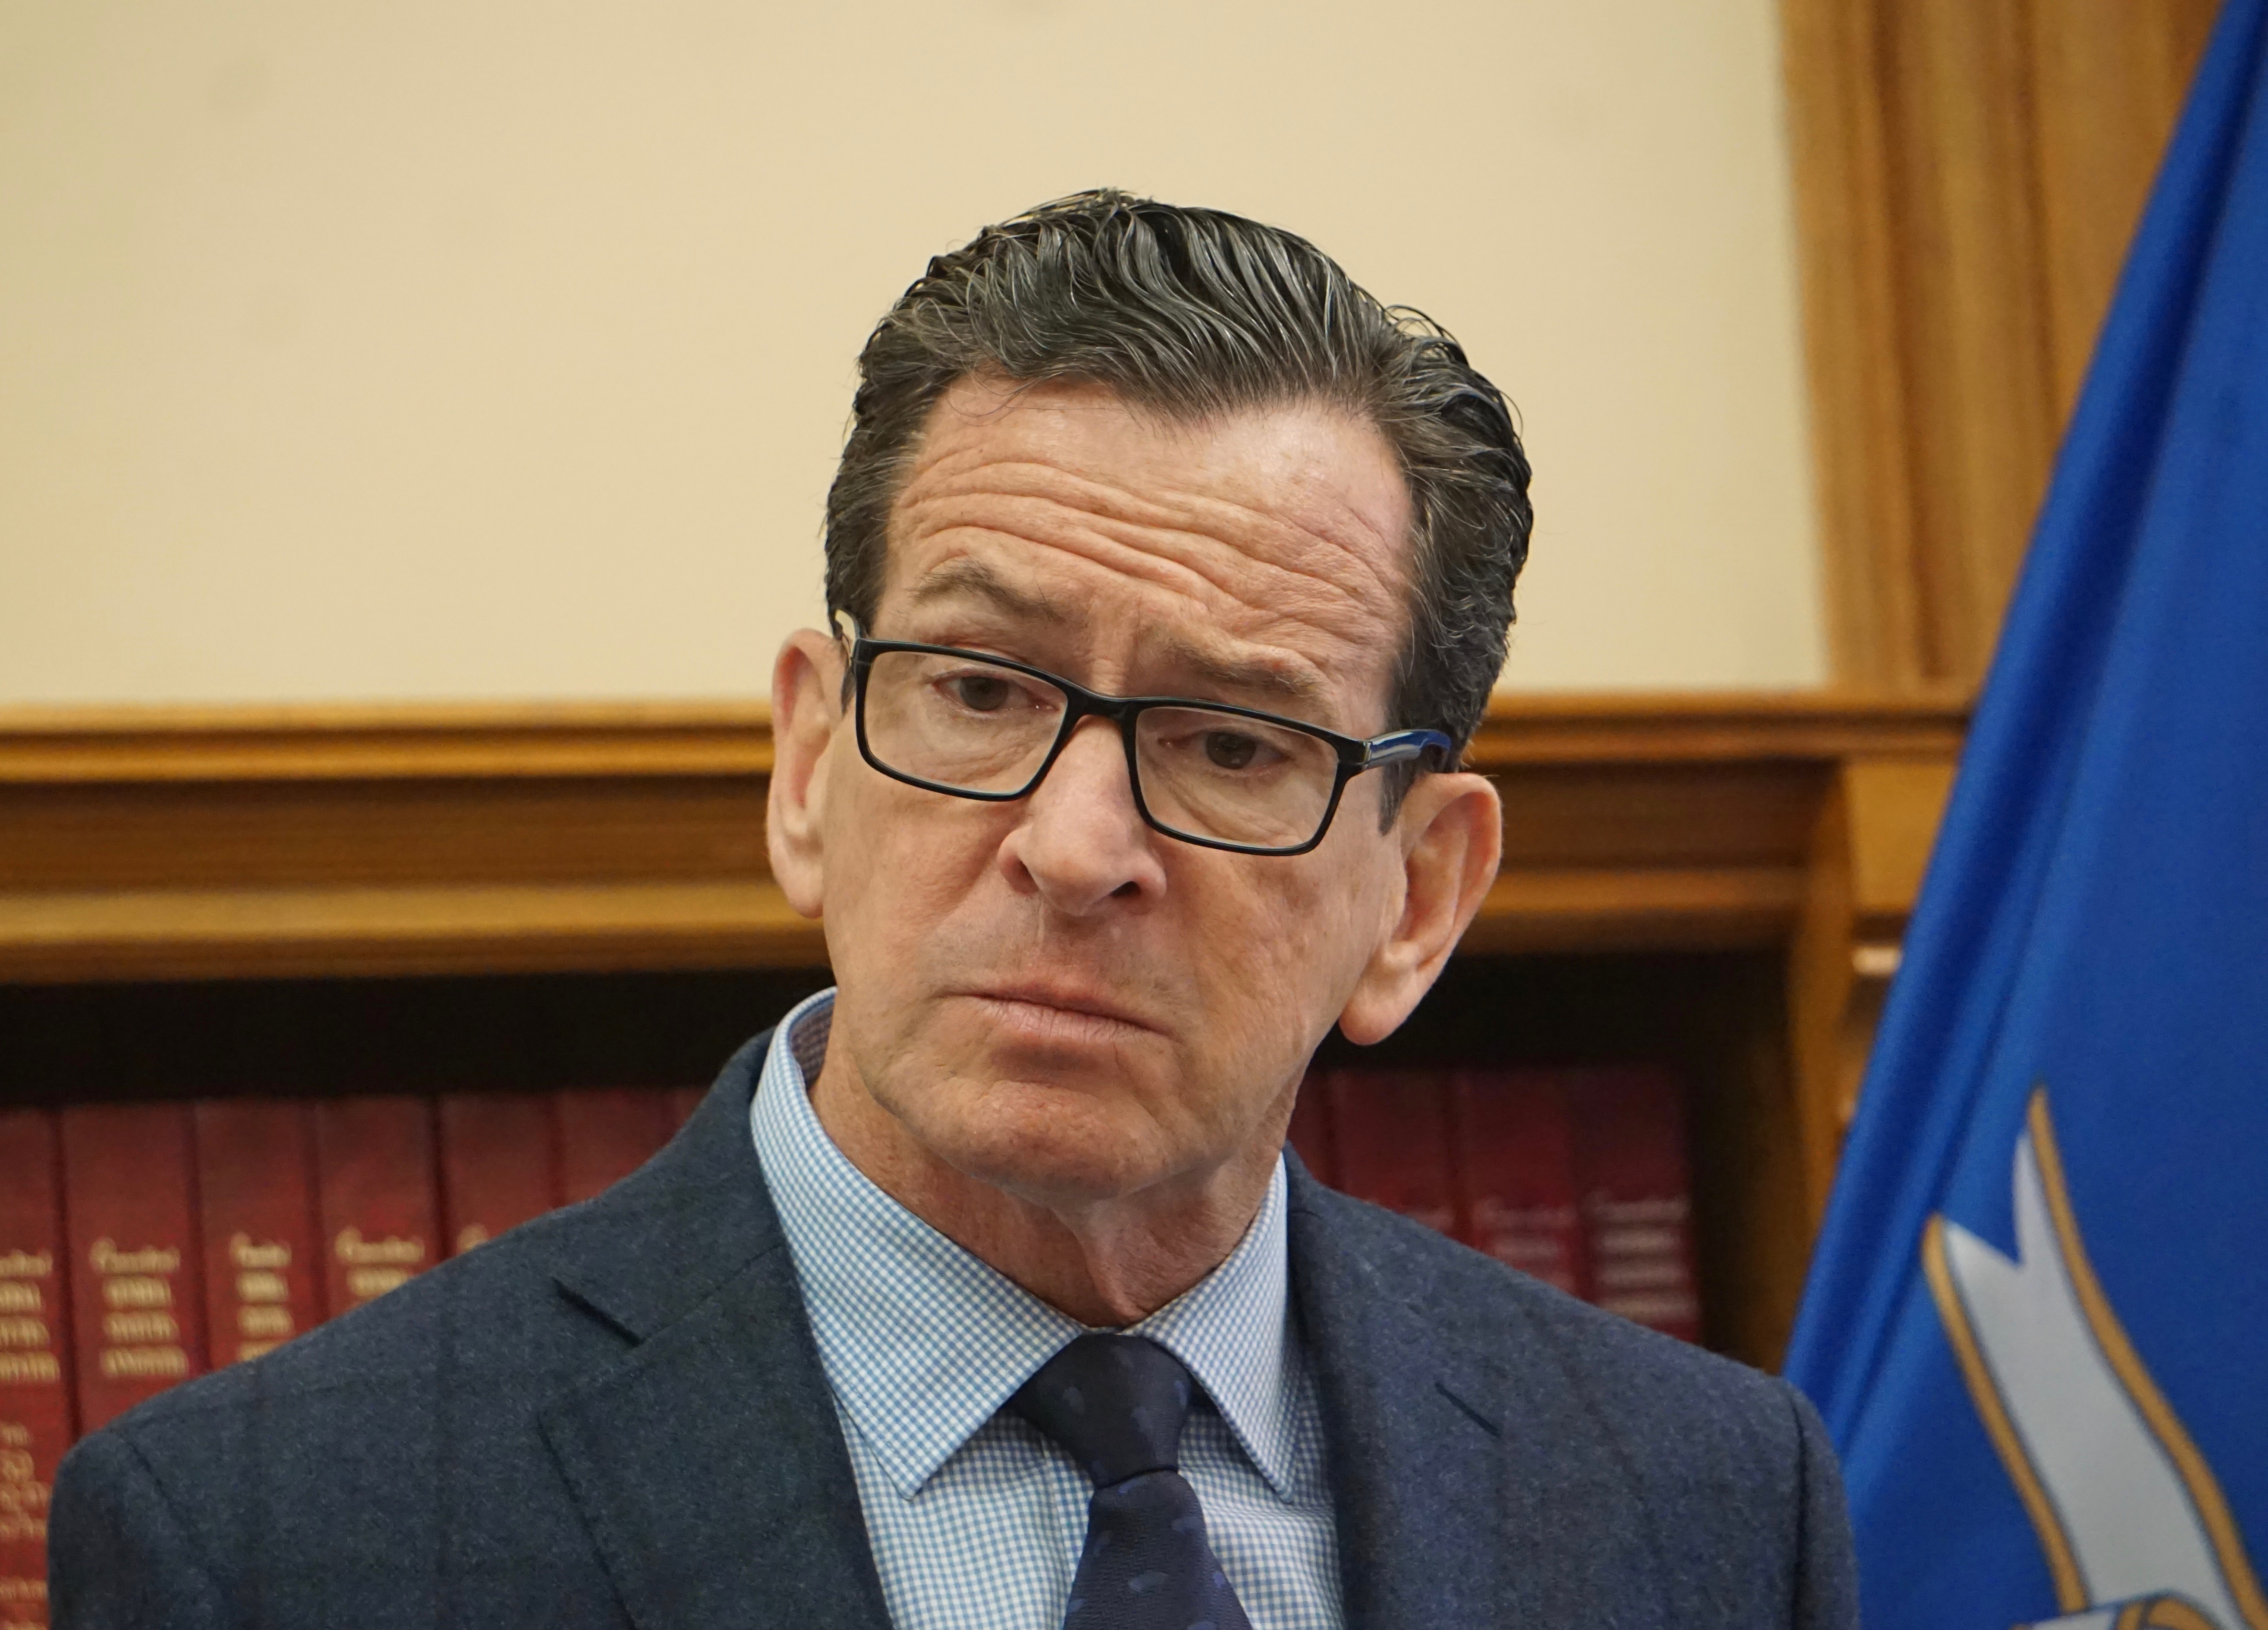 Malloy asks for ideas to cut the budget, but agency heads offer few